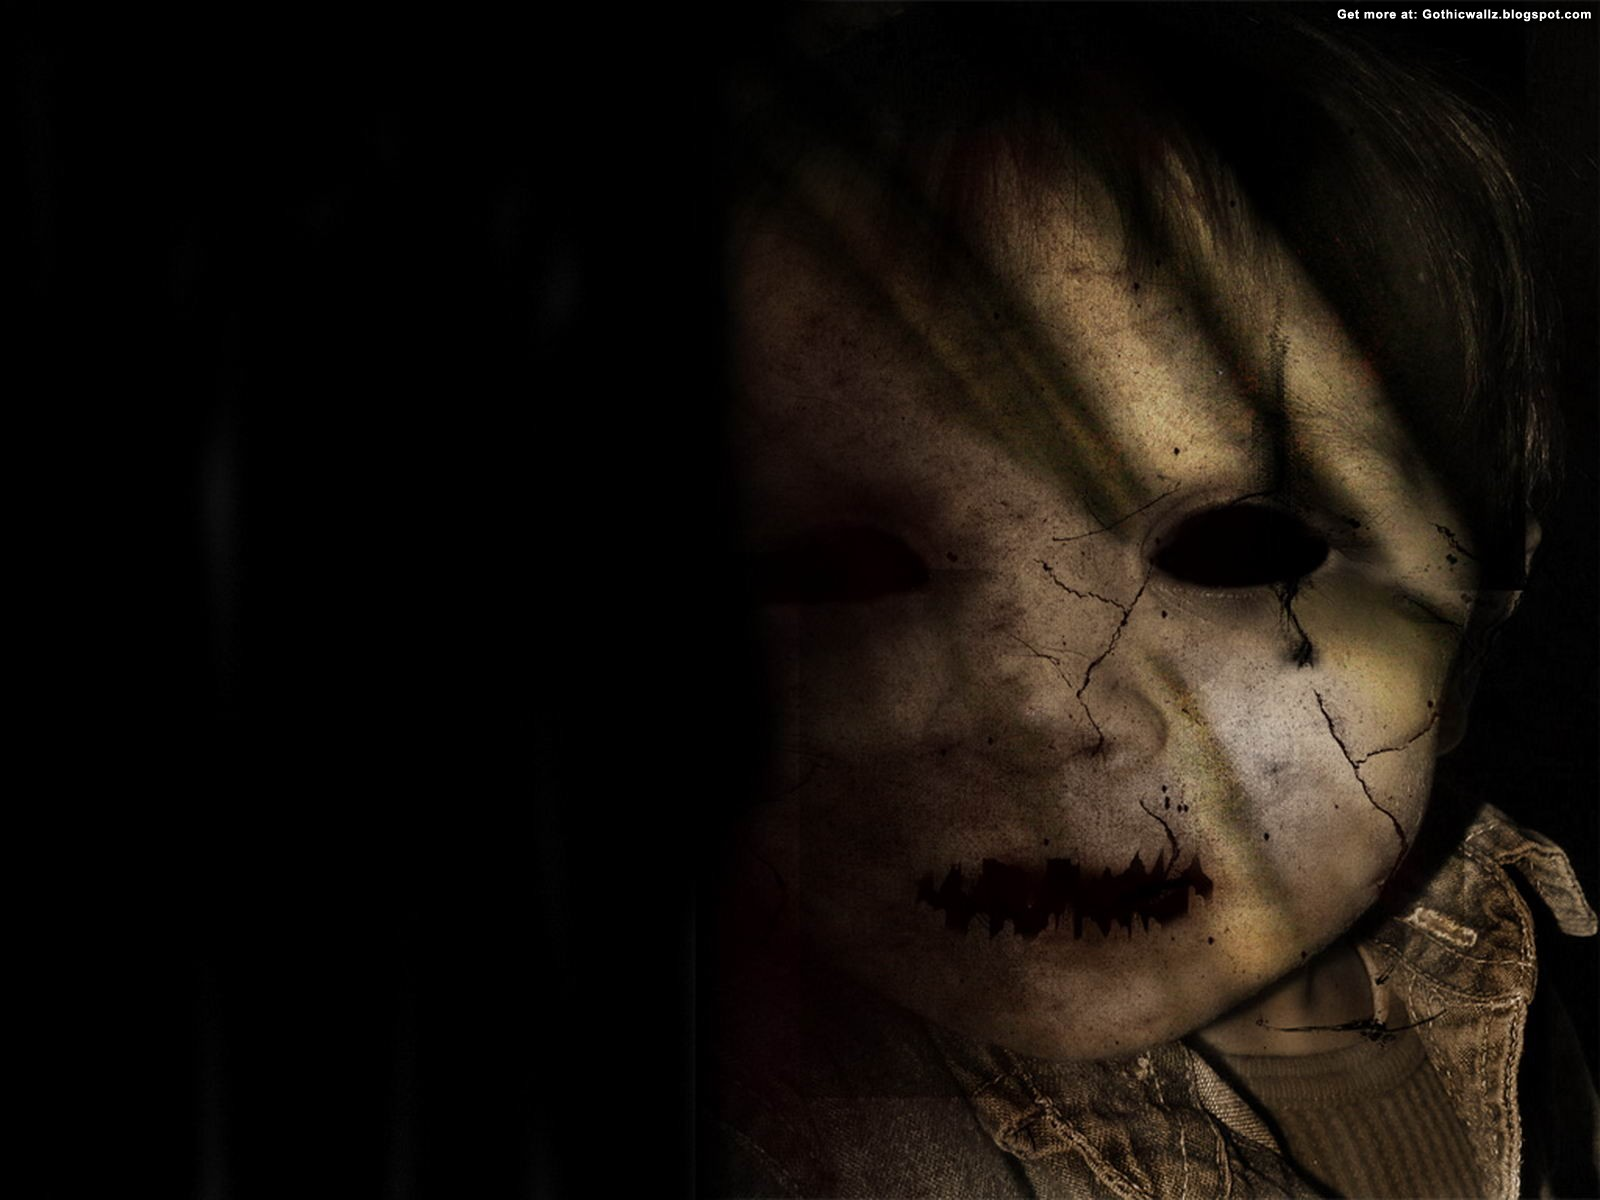 Horror Darkness Poze | Gothic Wallpaper Download